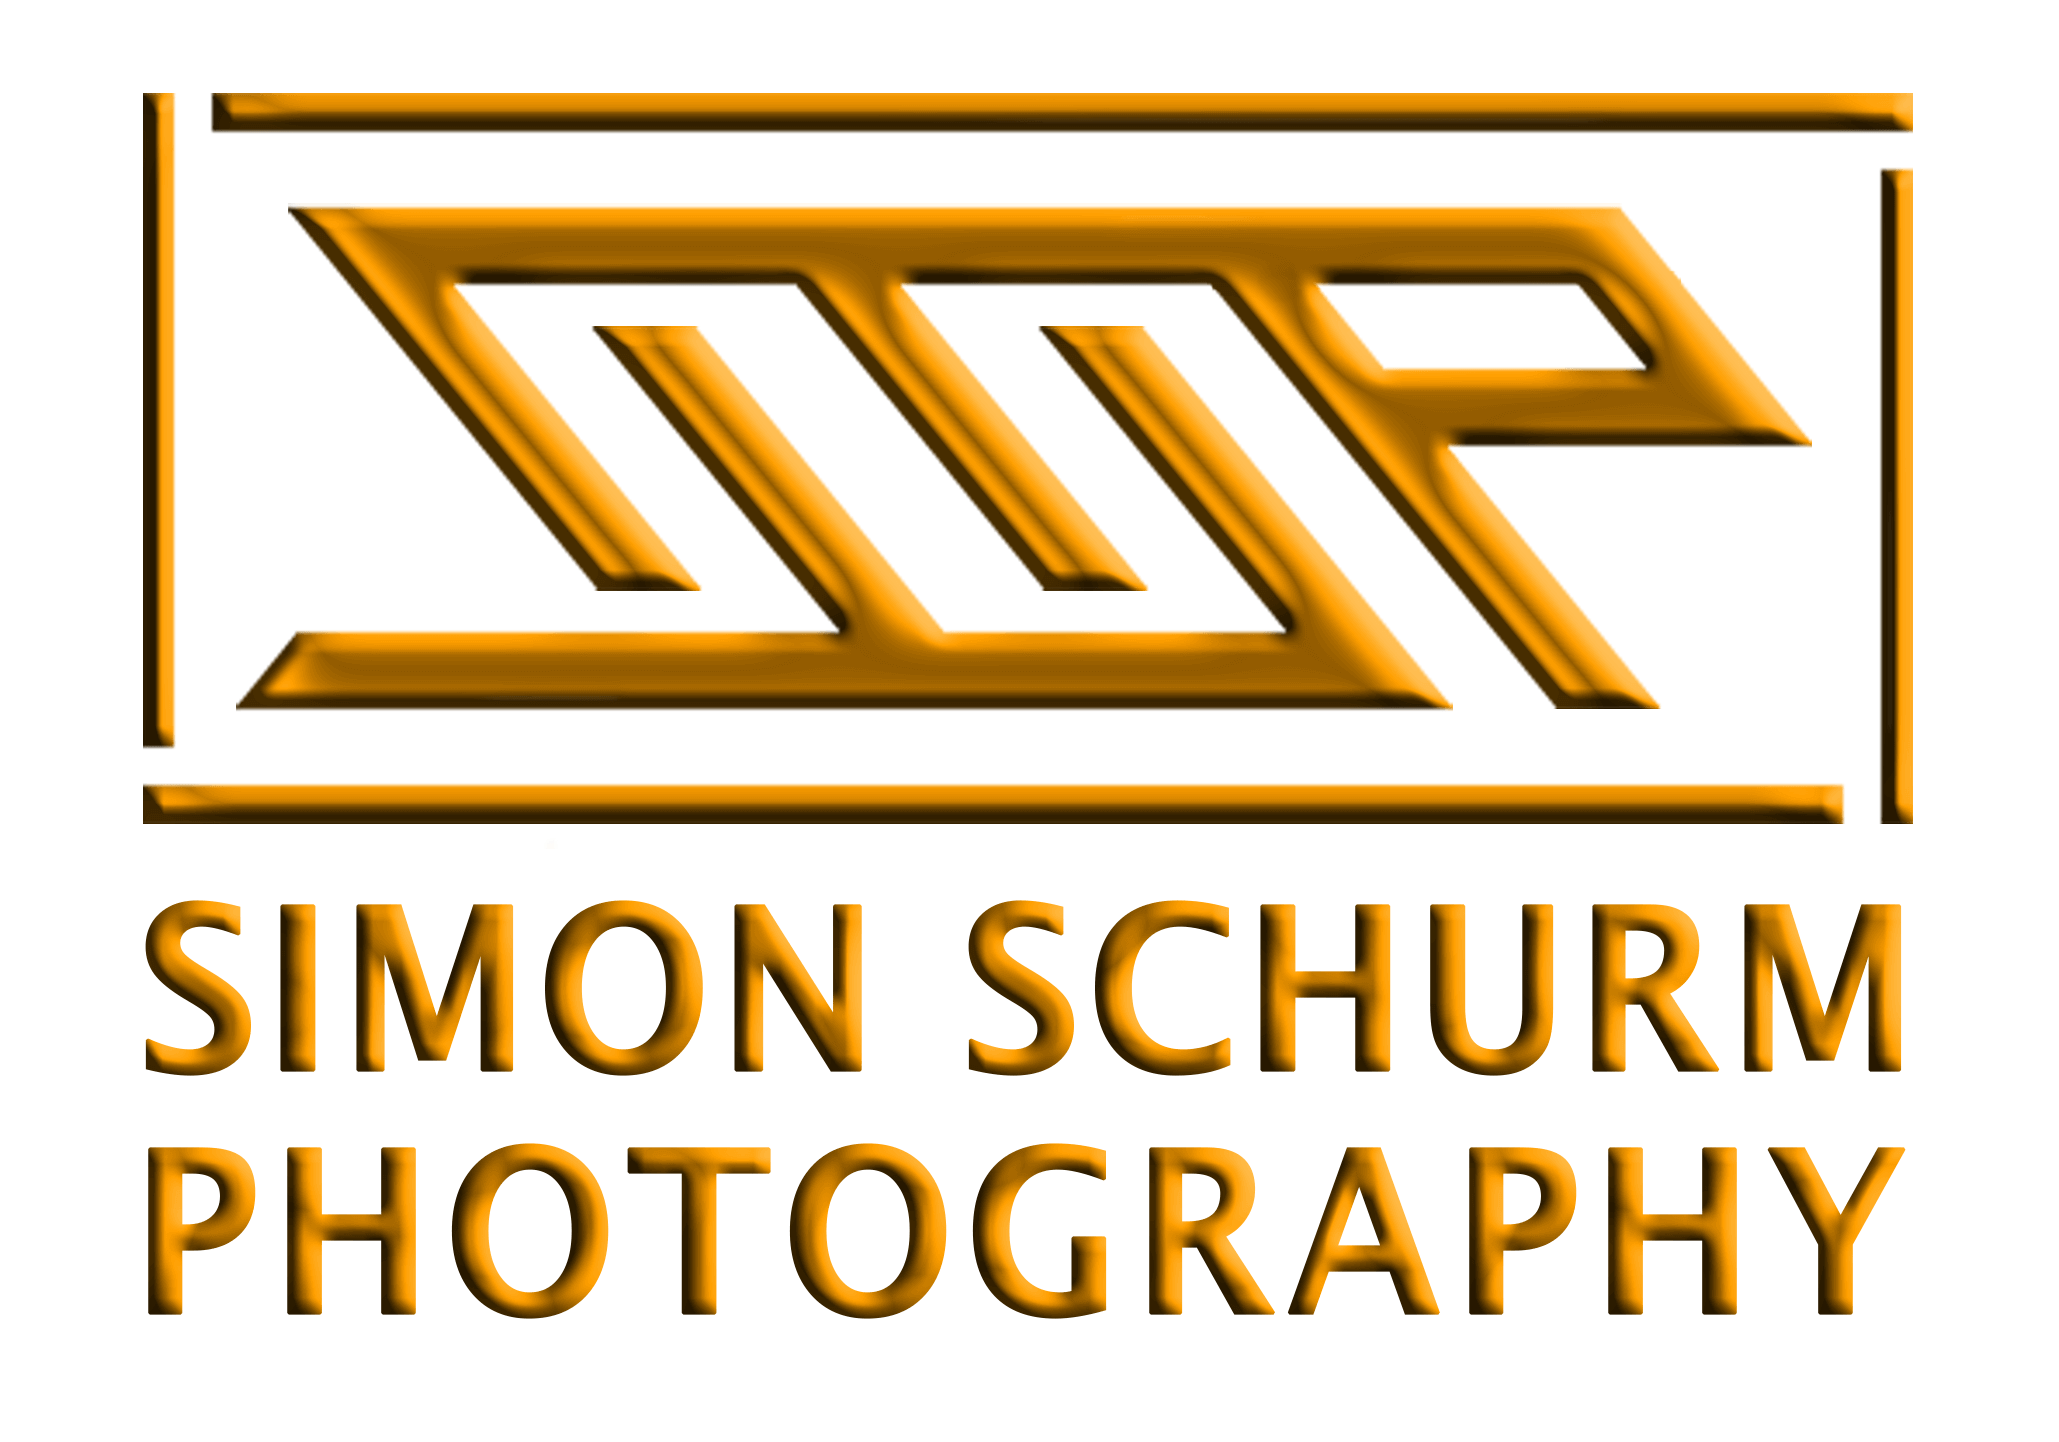 Simon Schurm Photography